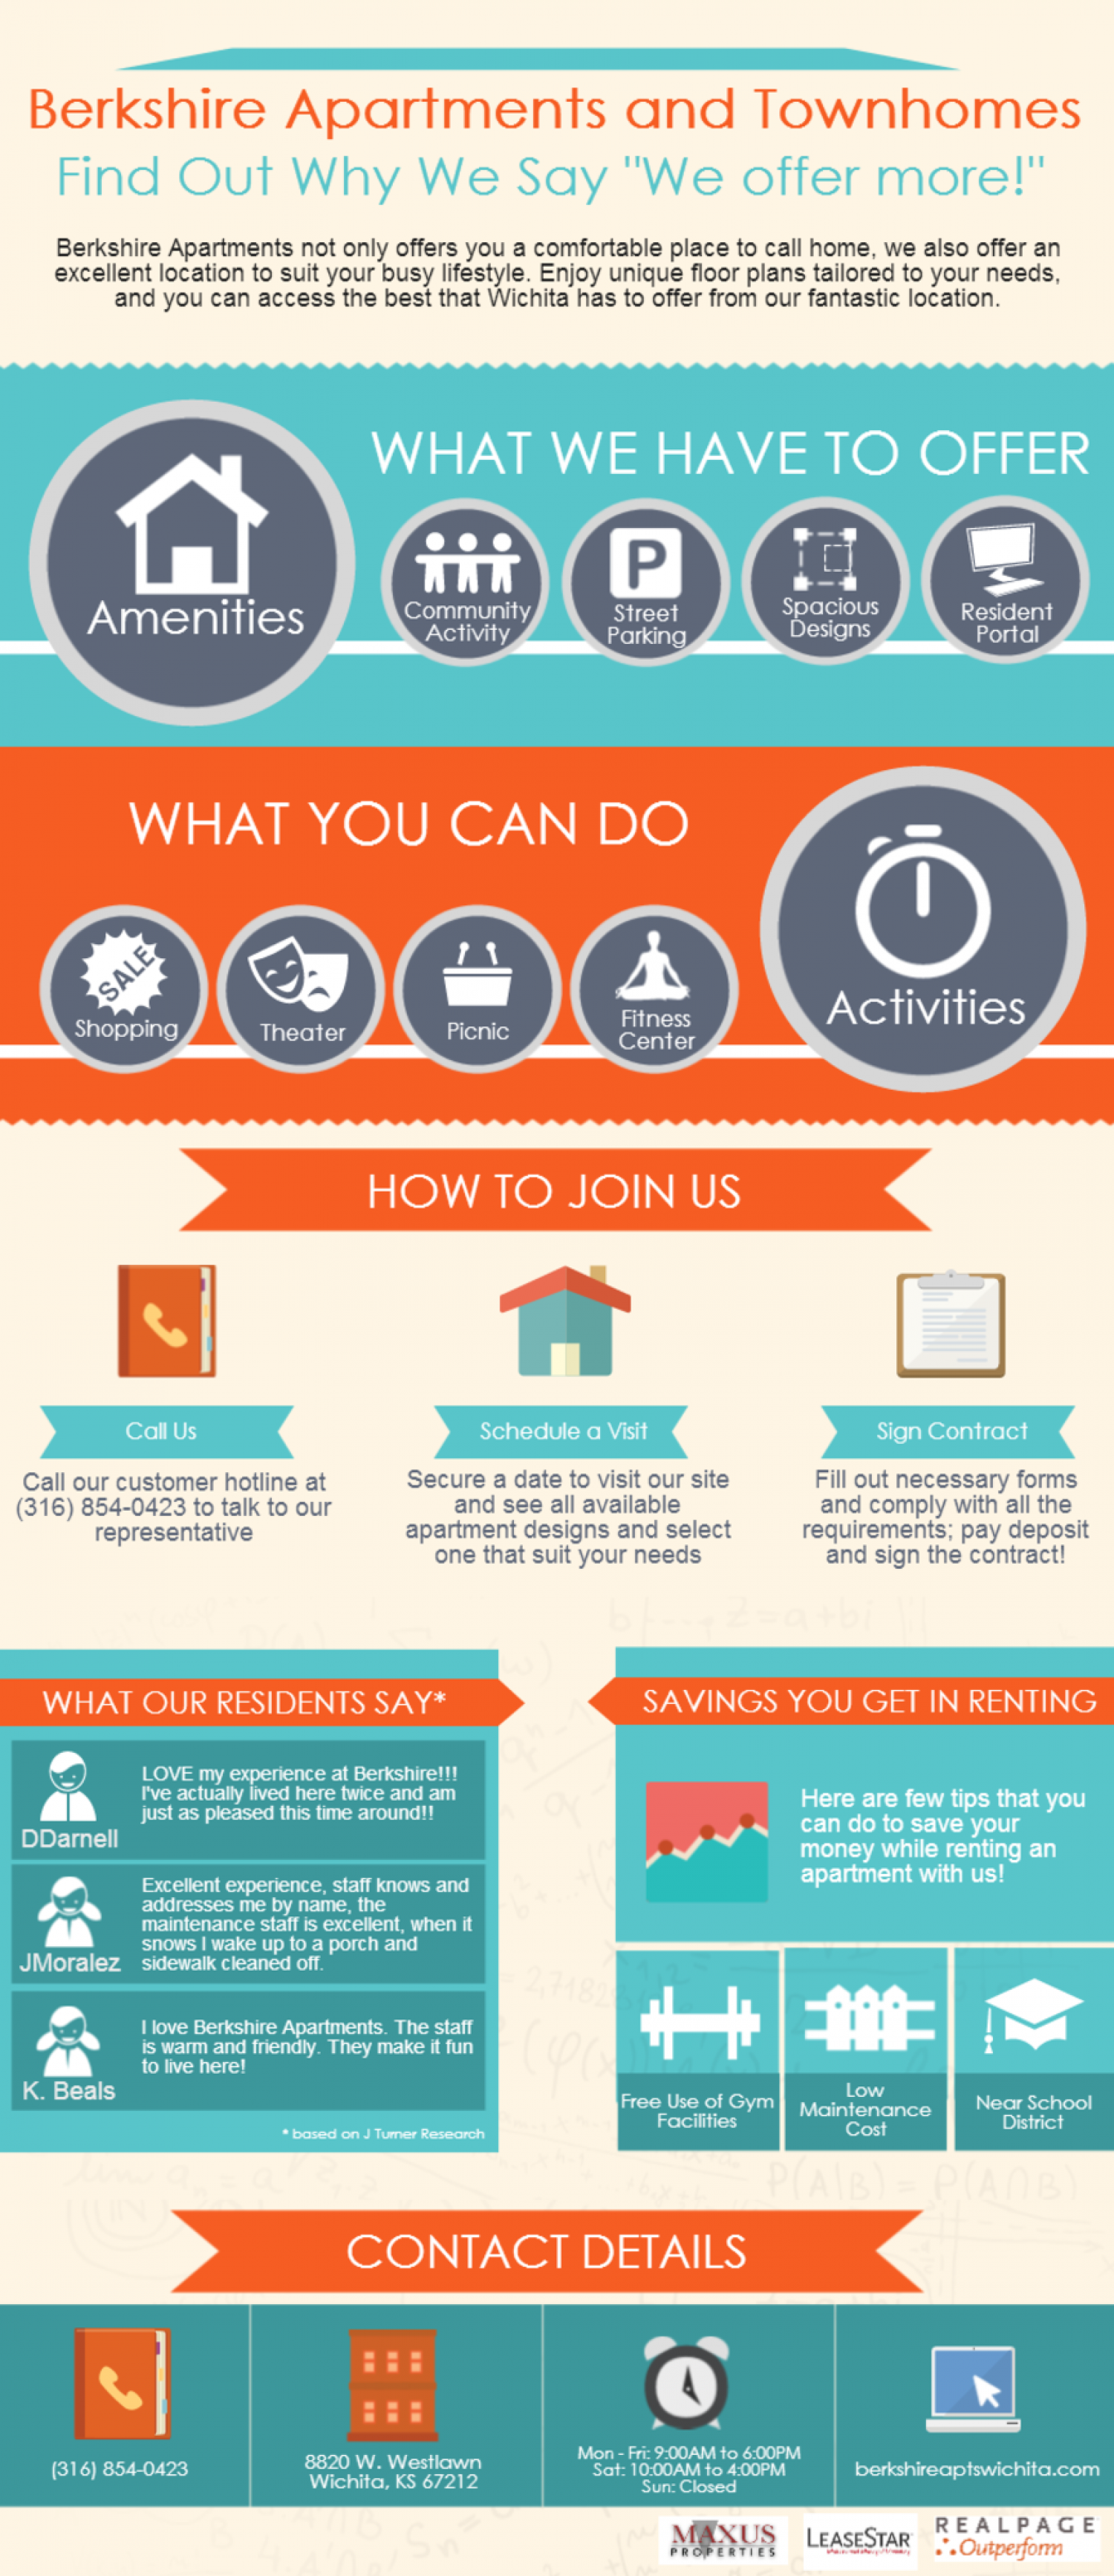 Berkshire Apartments and Townhomes Infographic